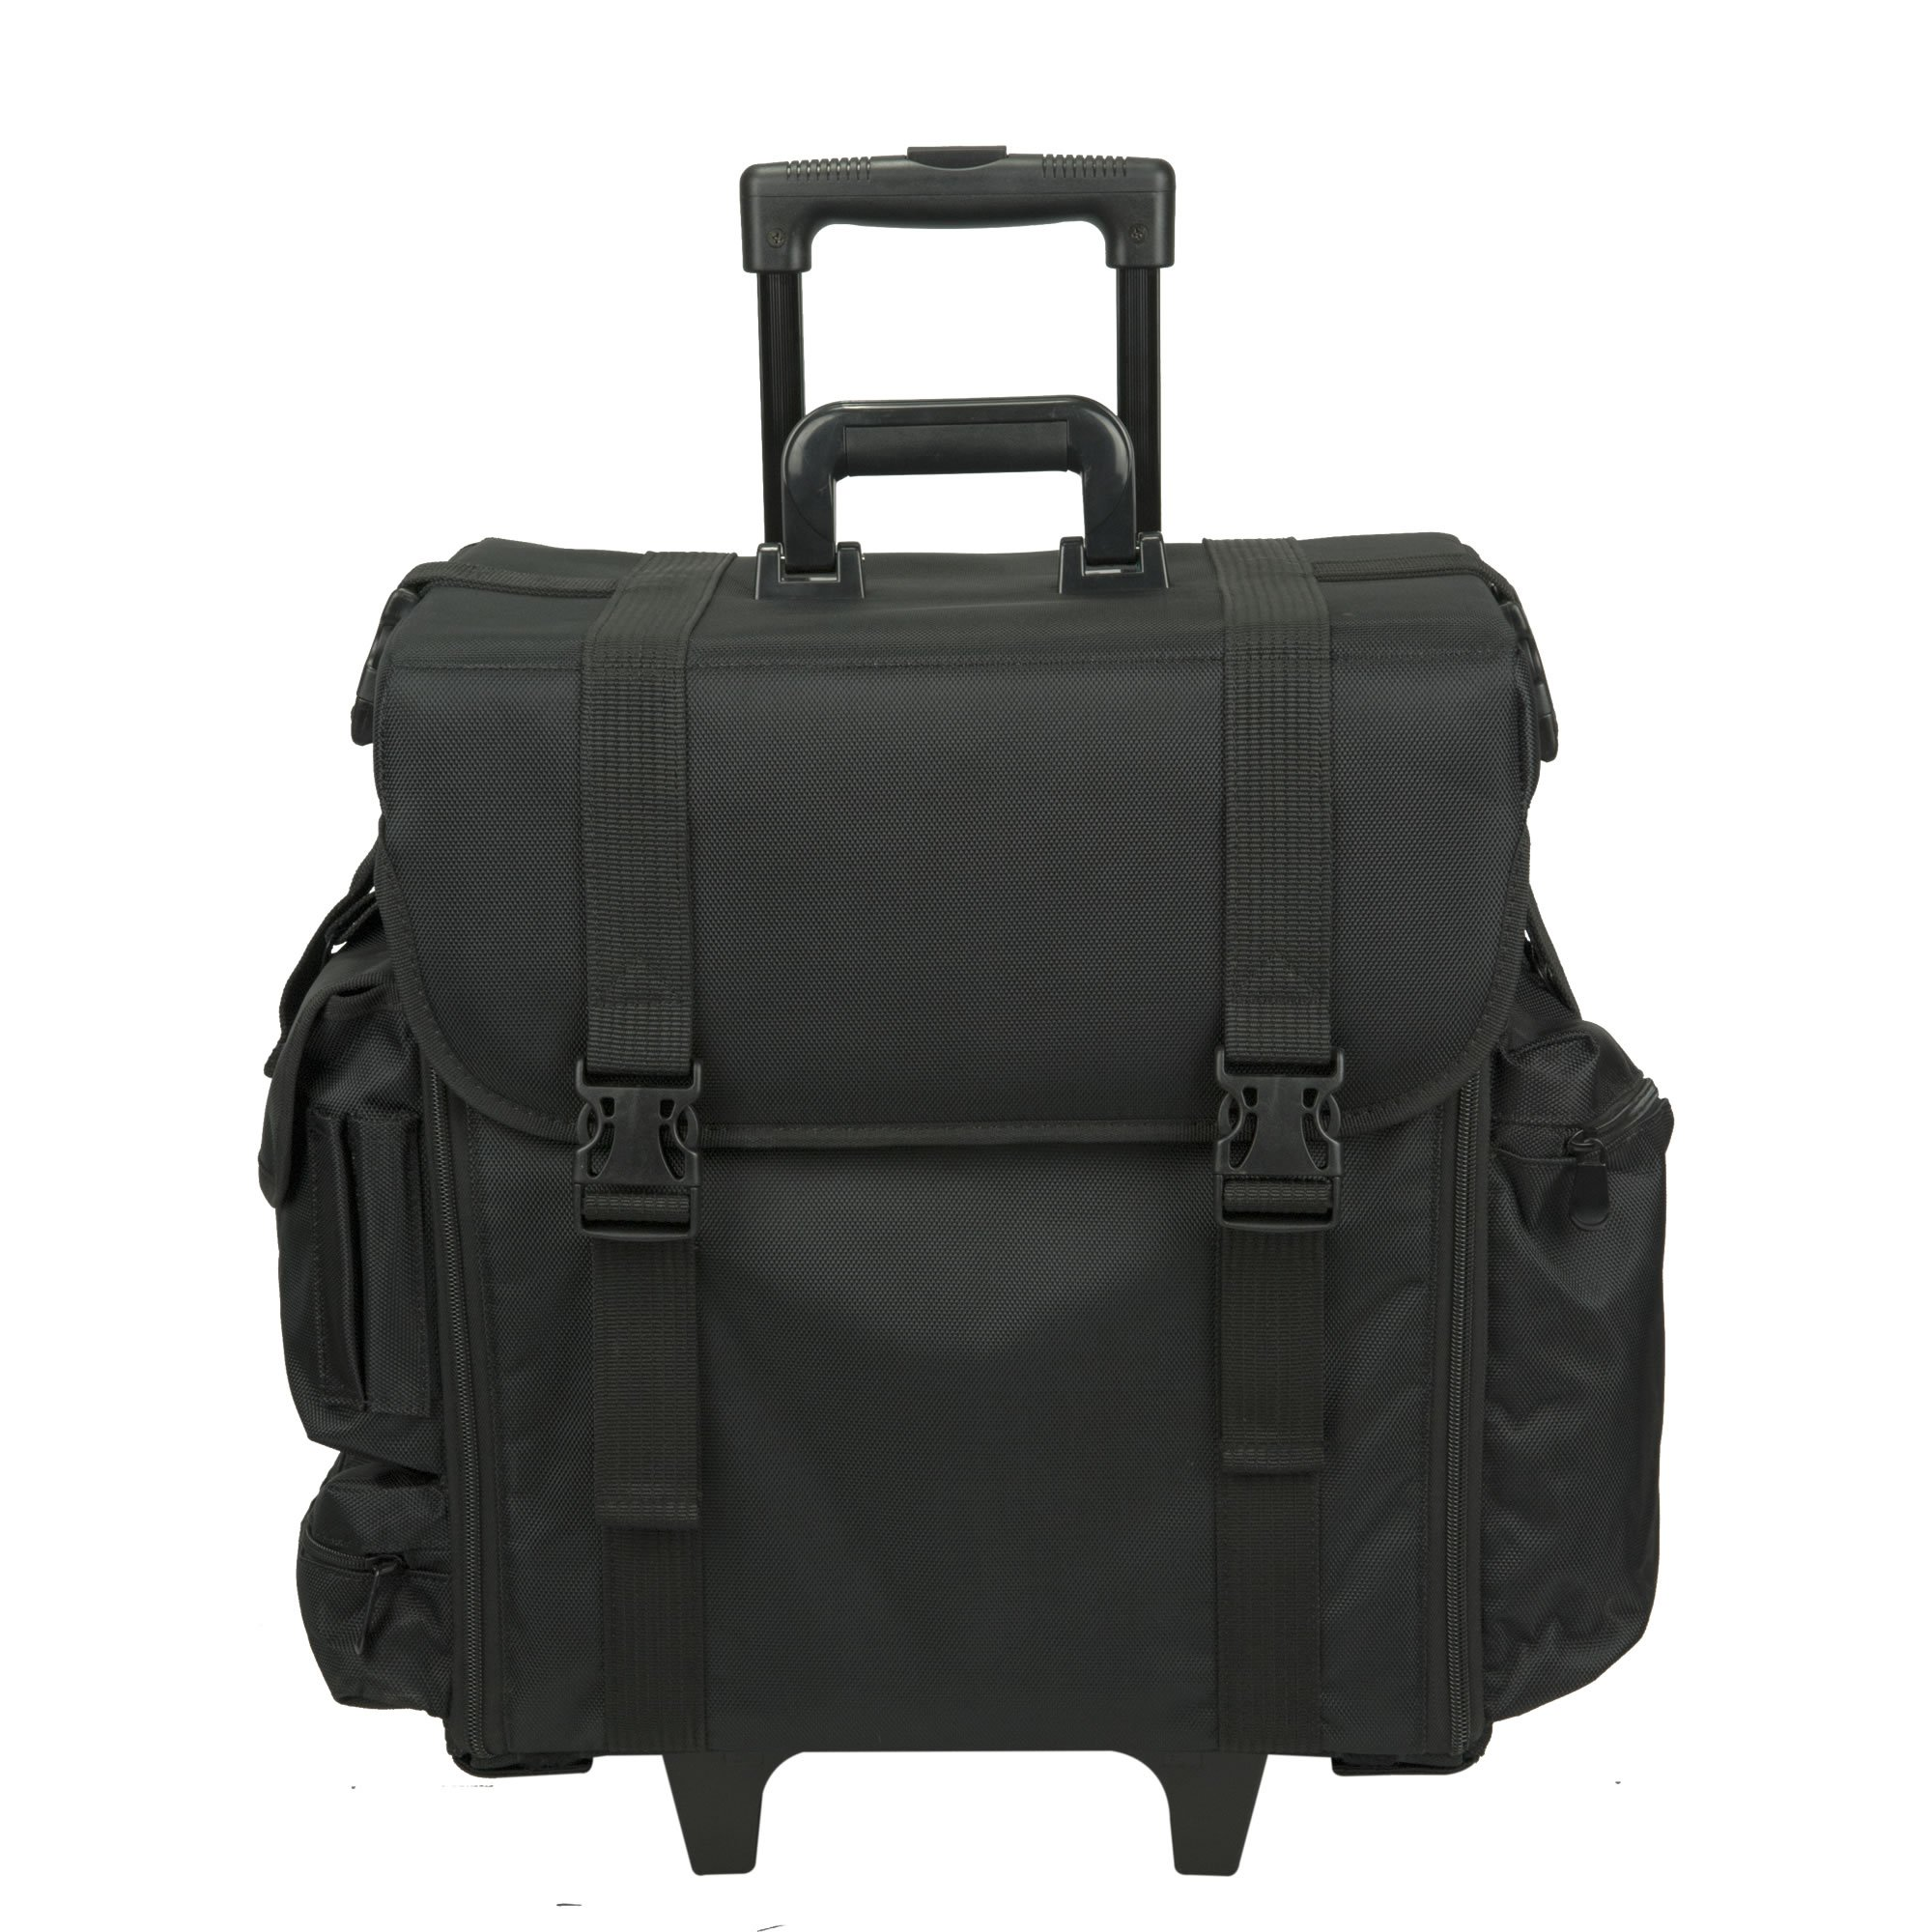 Hiker Professional Carry On Soft Sided Makeup Rolling Case, Nylon Black by Hiker